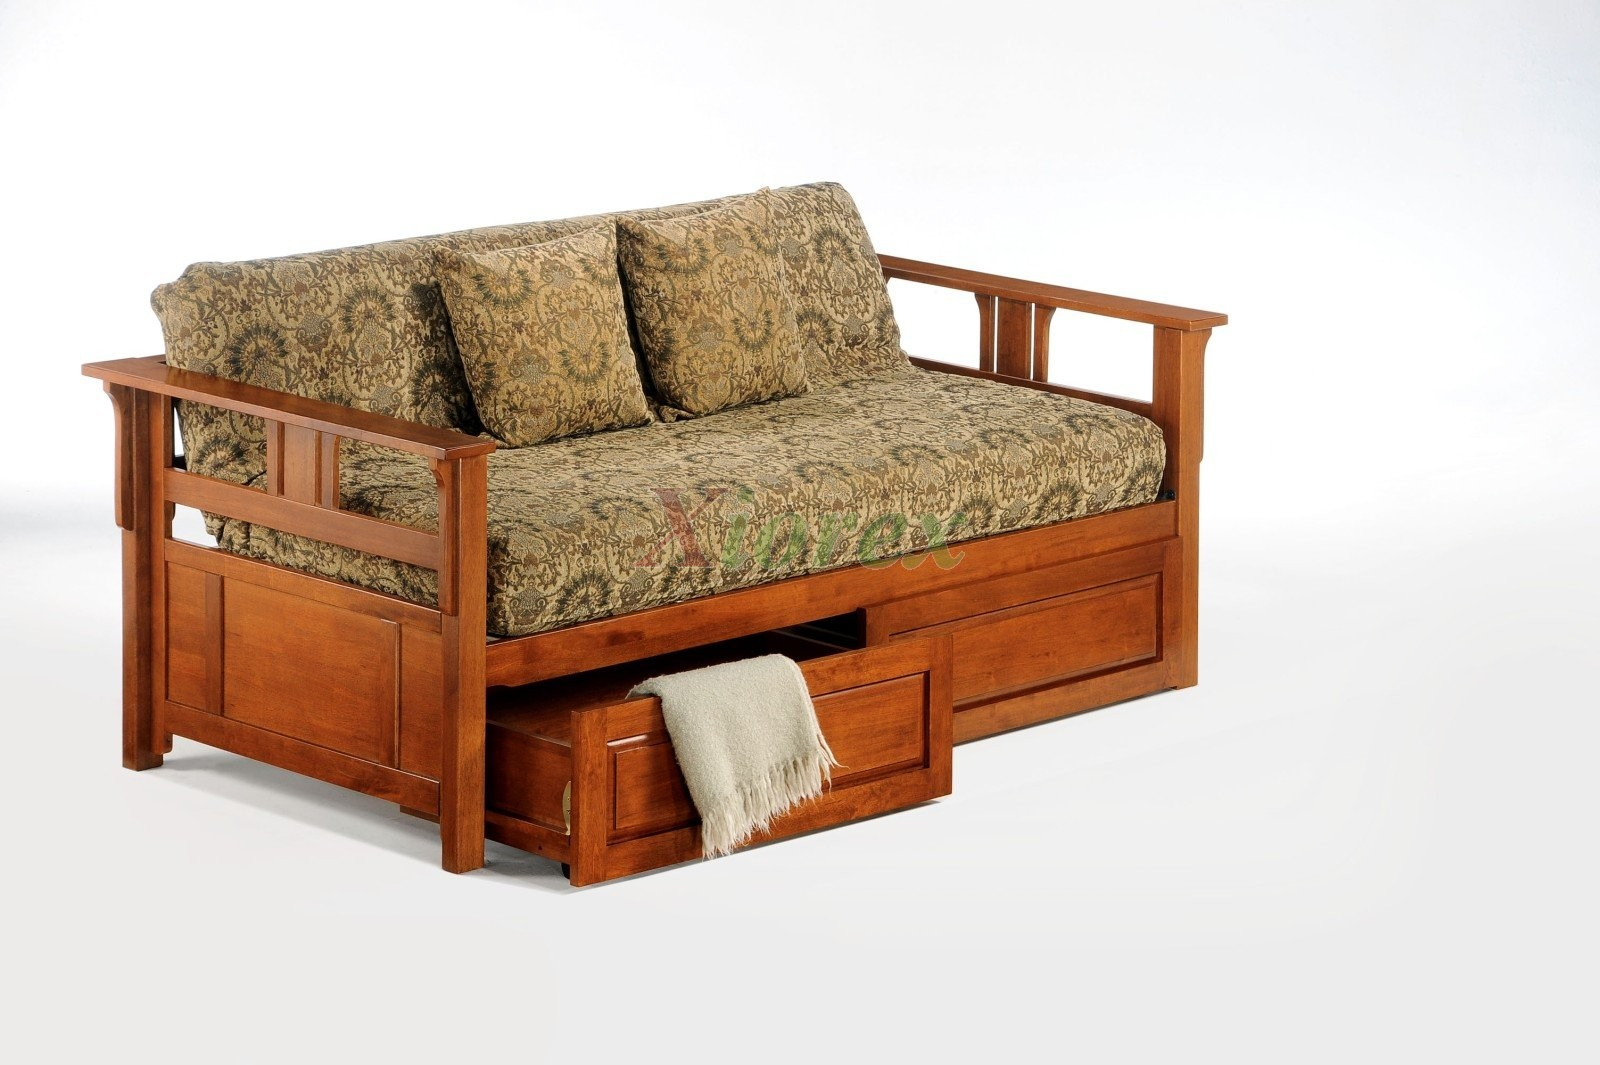 Night and day teddy roosevelt daybed with trundle guest Daybeds with storage